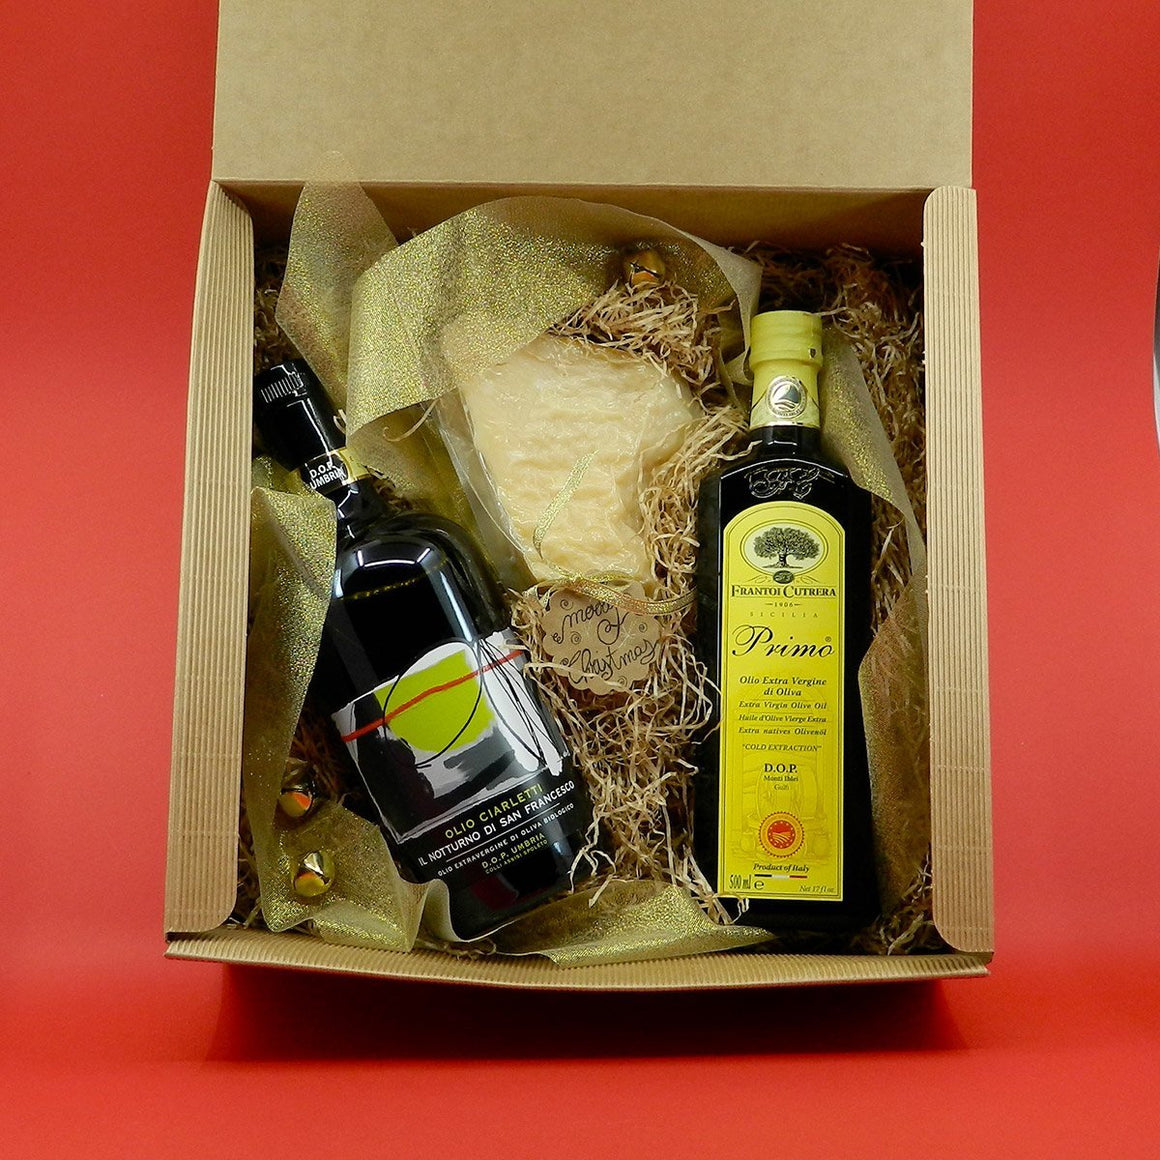 [GIFT] DOP Selection Extra Virgin Olive Oil 2 bottles & Parmigiano Reggiano - PepeGusto